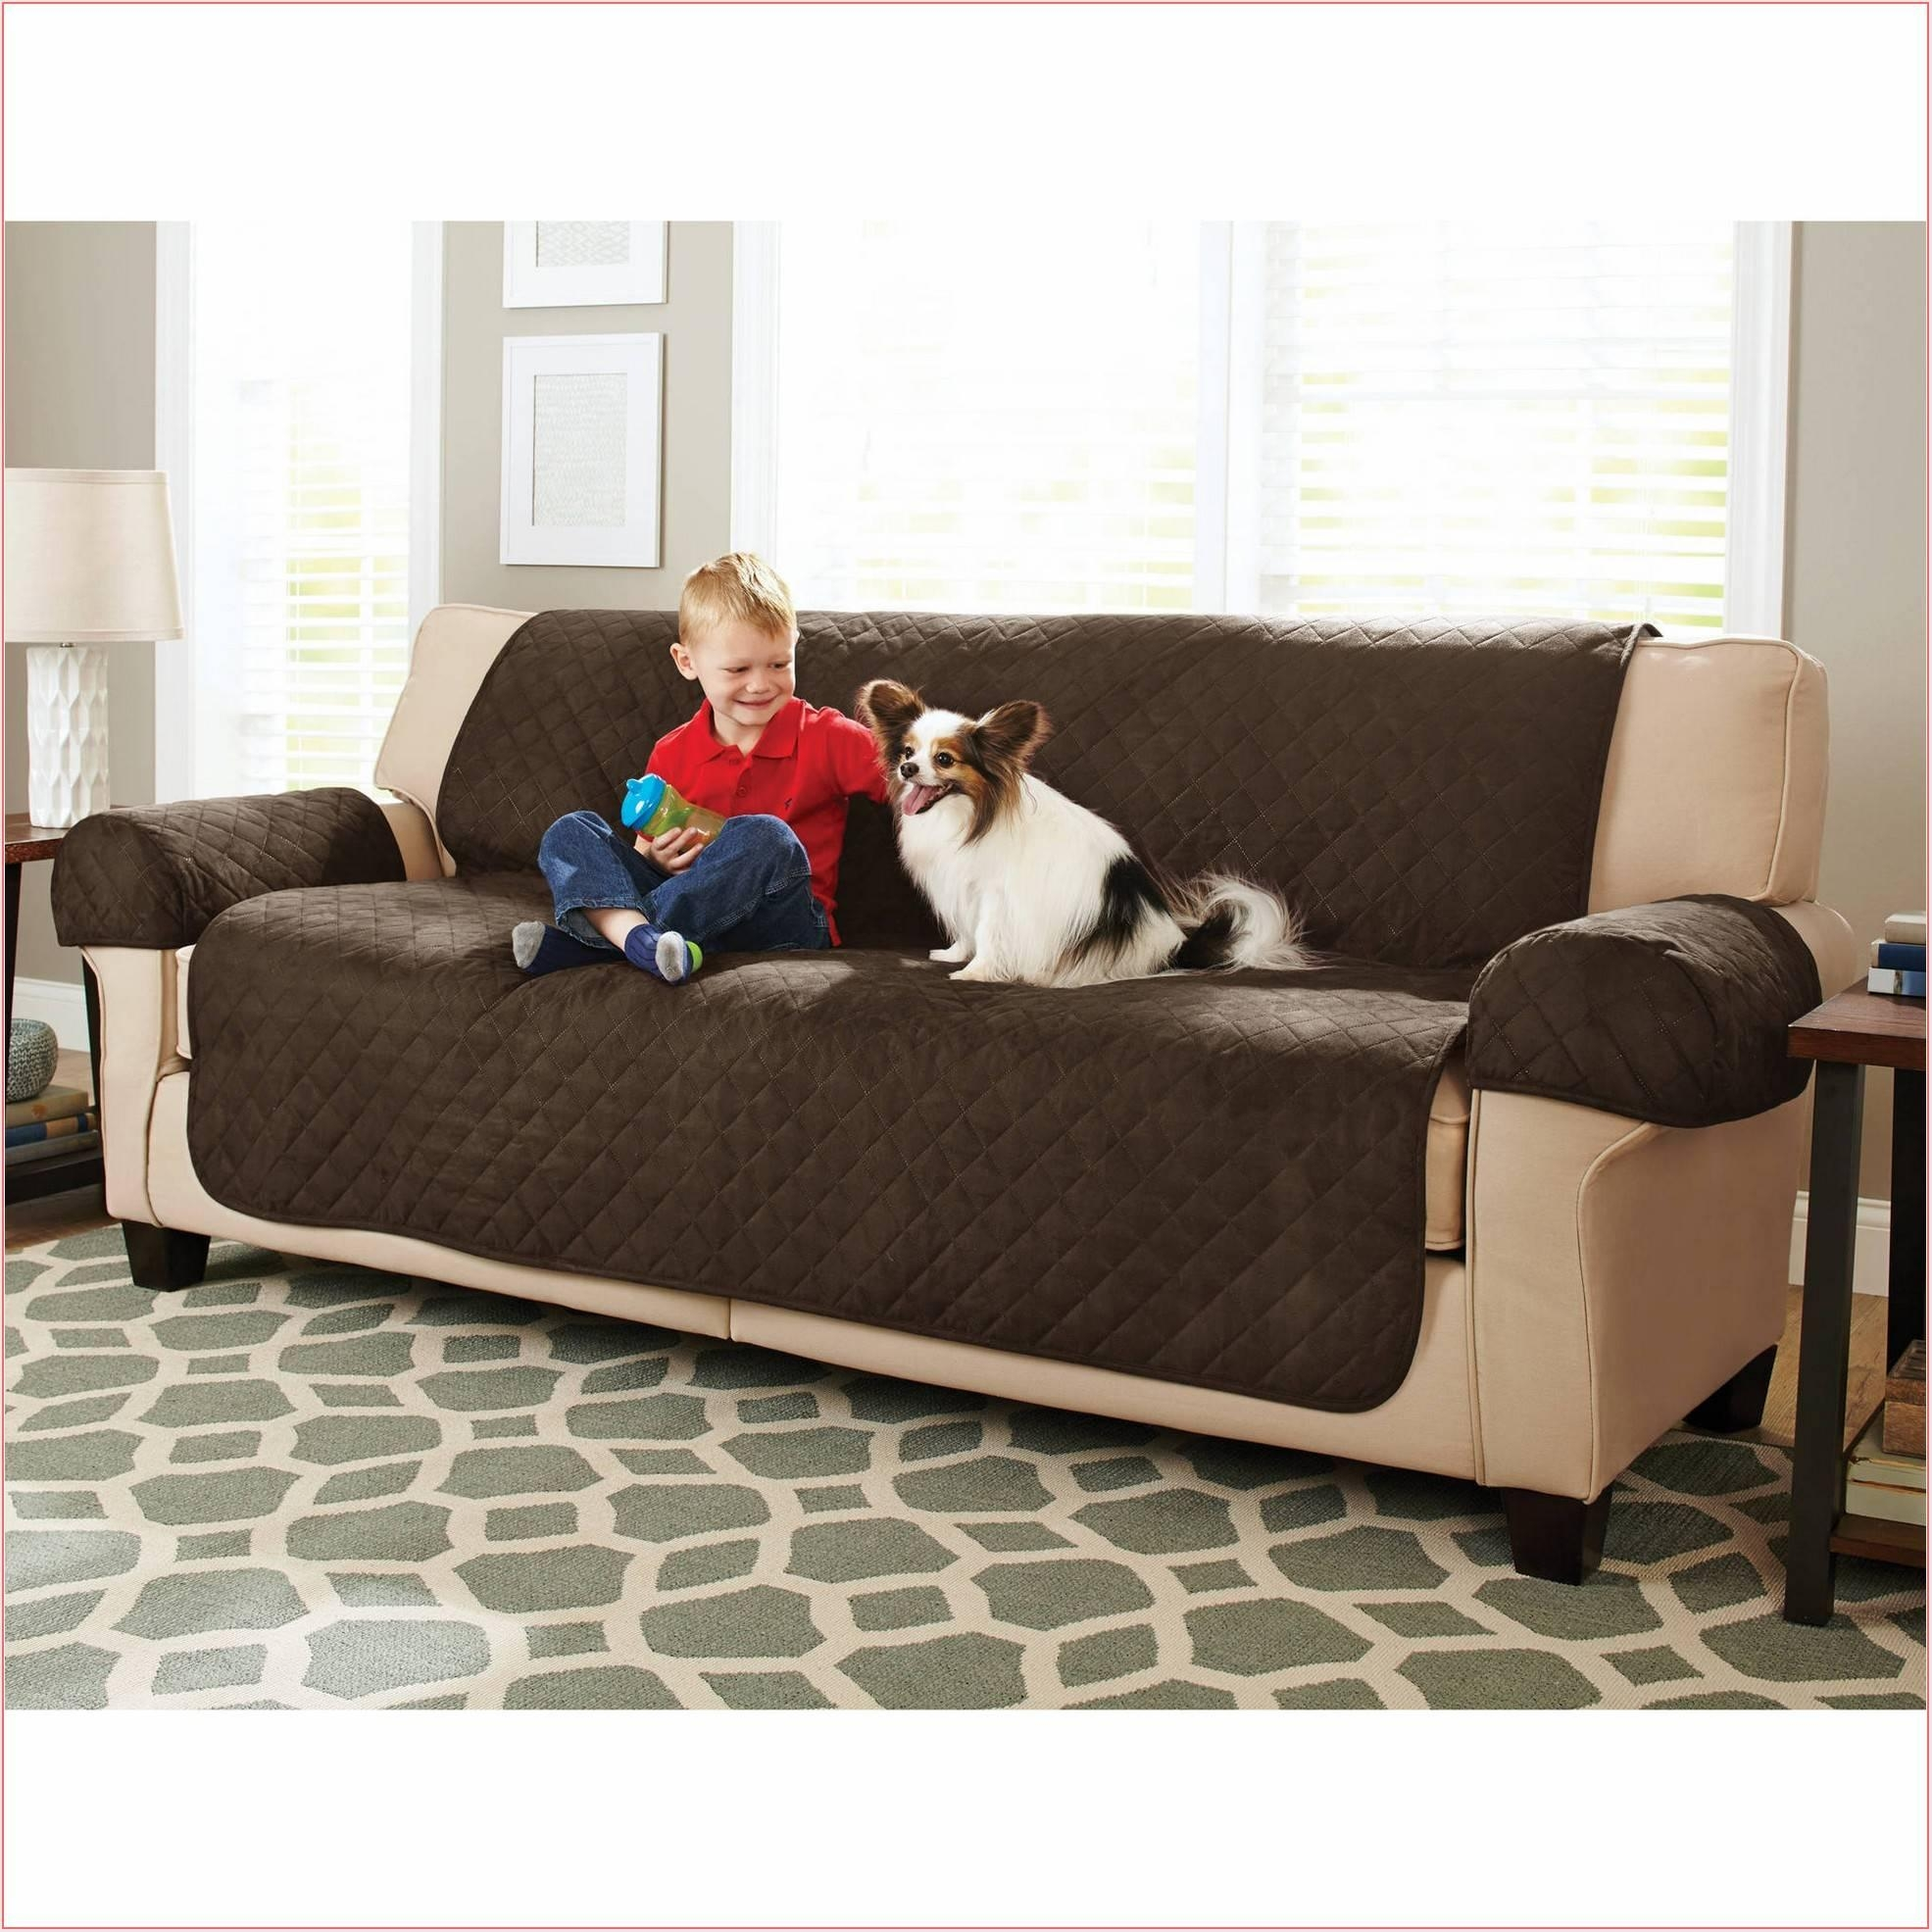 Good Cat Proof Sofa 54 For Sofas And Couches Ideas With Cat Proof Sofa With Regard To Cat Proof Sofas (Image 8 of 20)